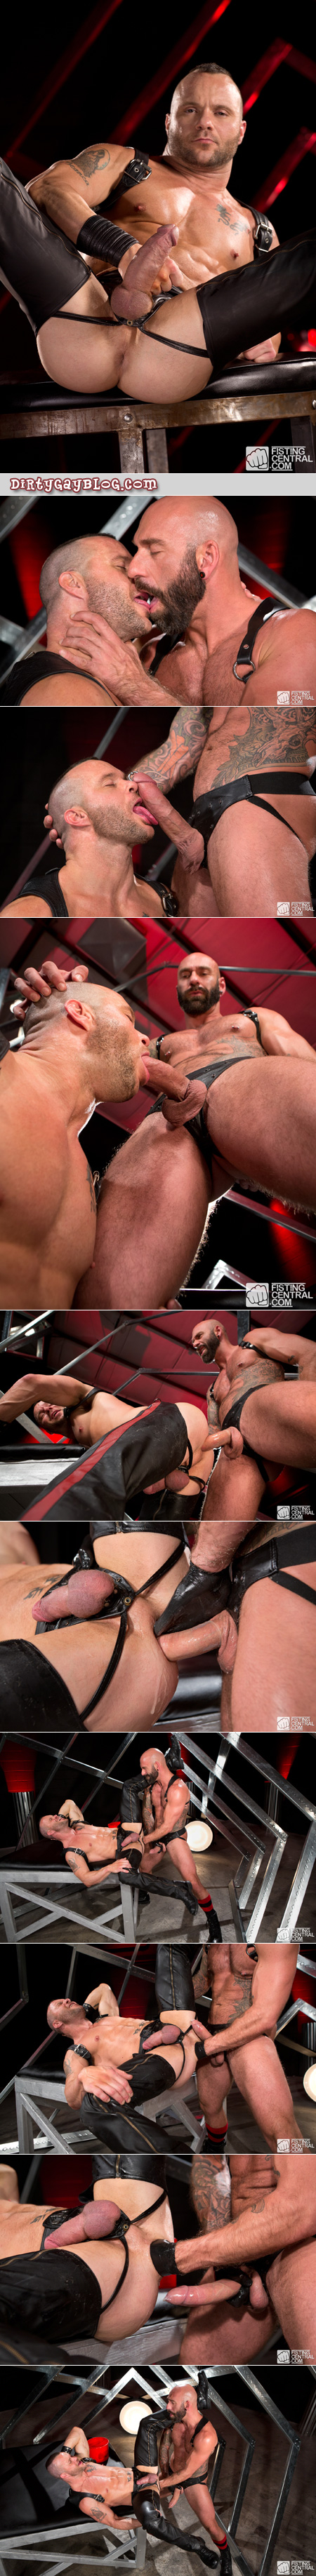 Muscular hunks in leather fist fucking and taking enormous cock.